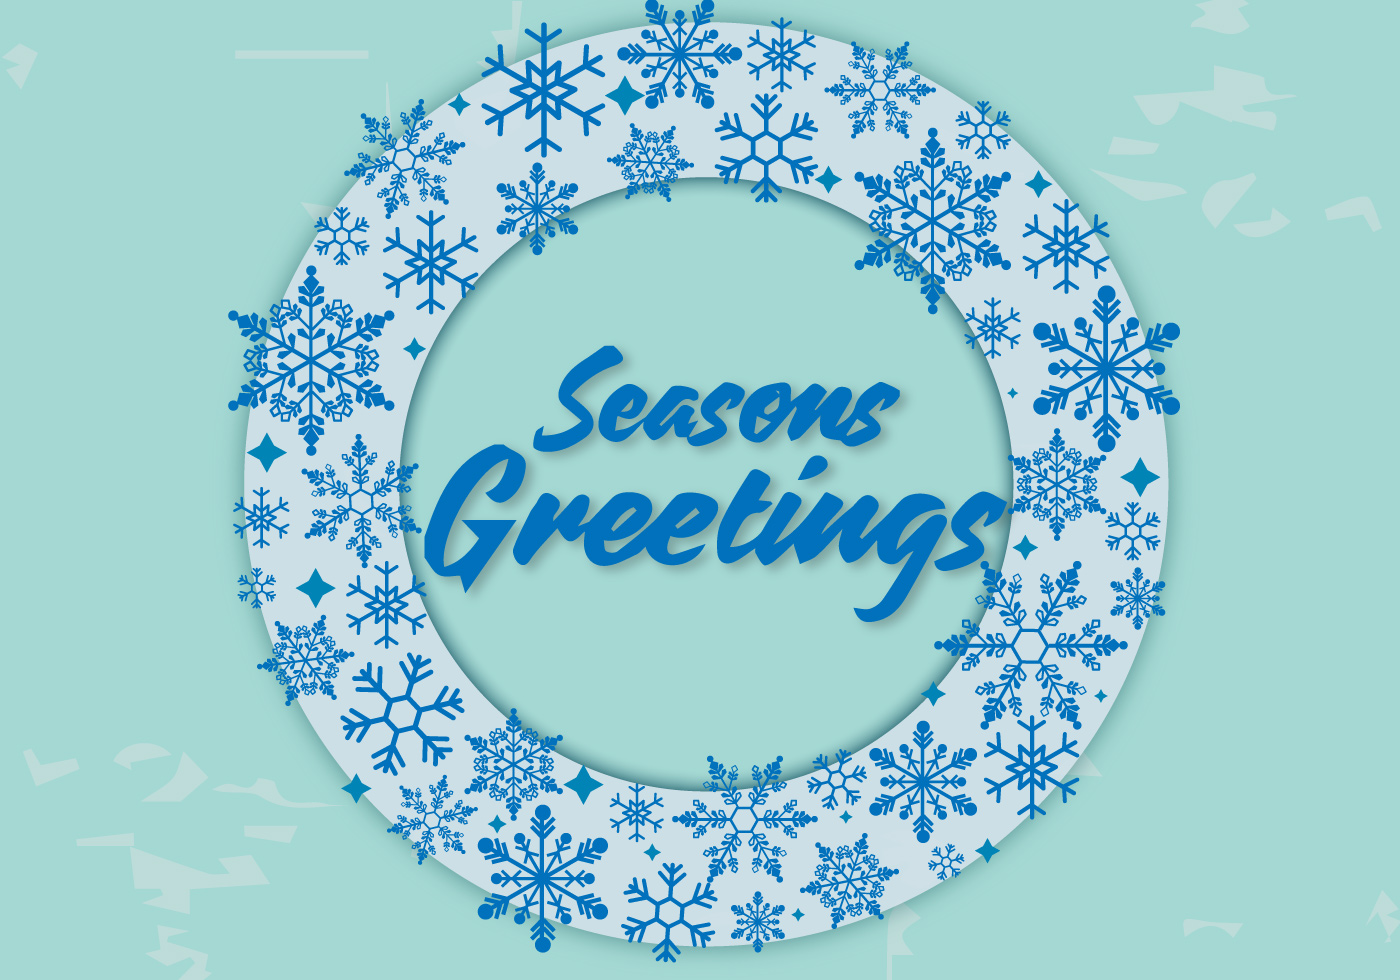 Free seasons greetings vector download free vector art stock free seasons greetings vector download free vector art stock graphics images kristyandbryce Image collections